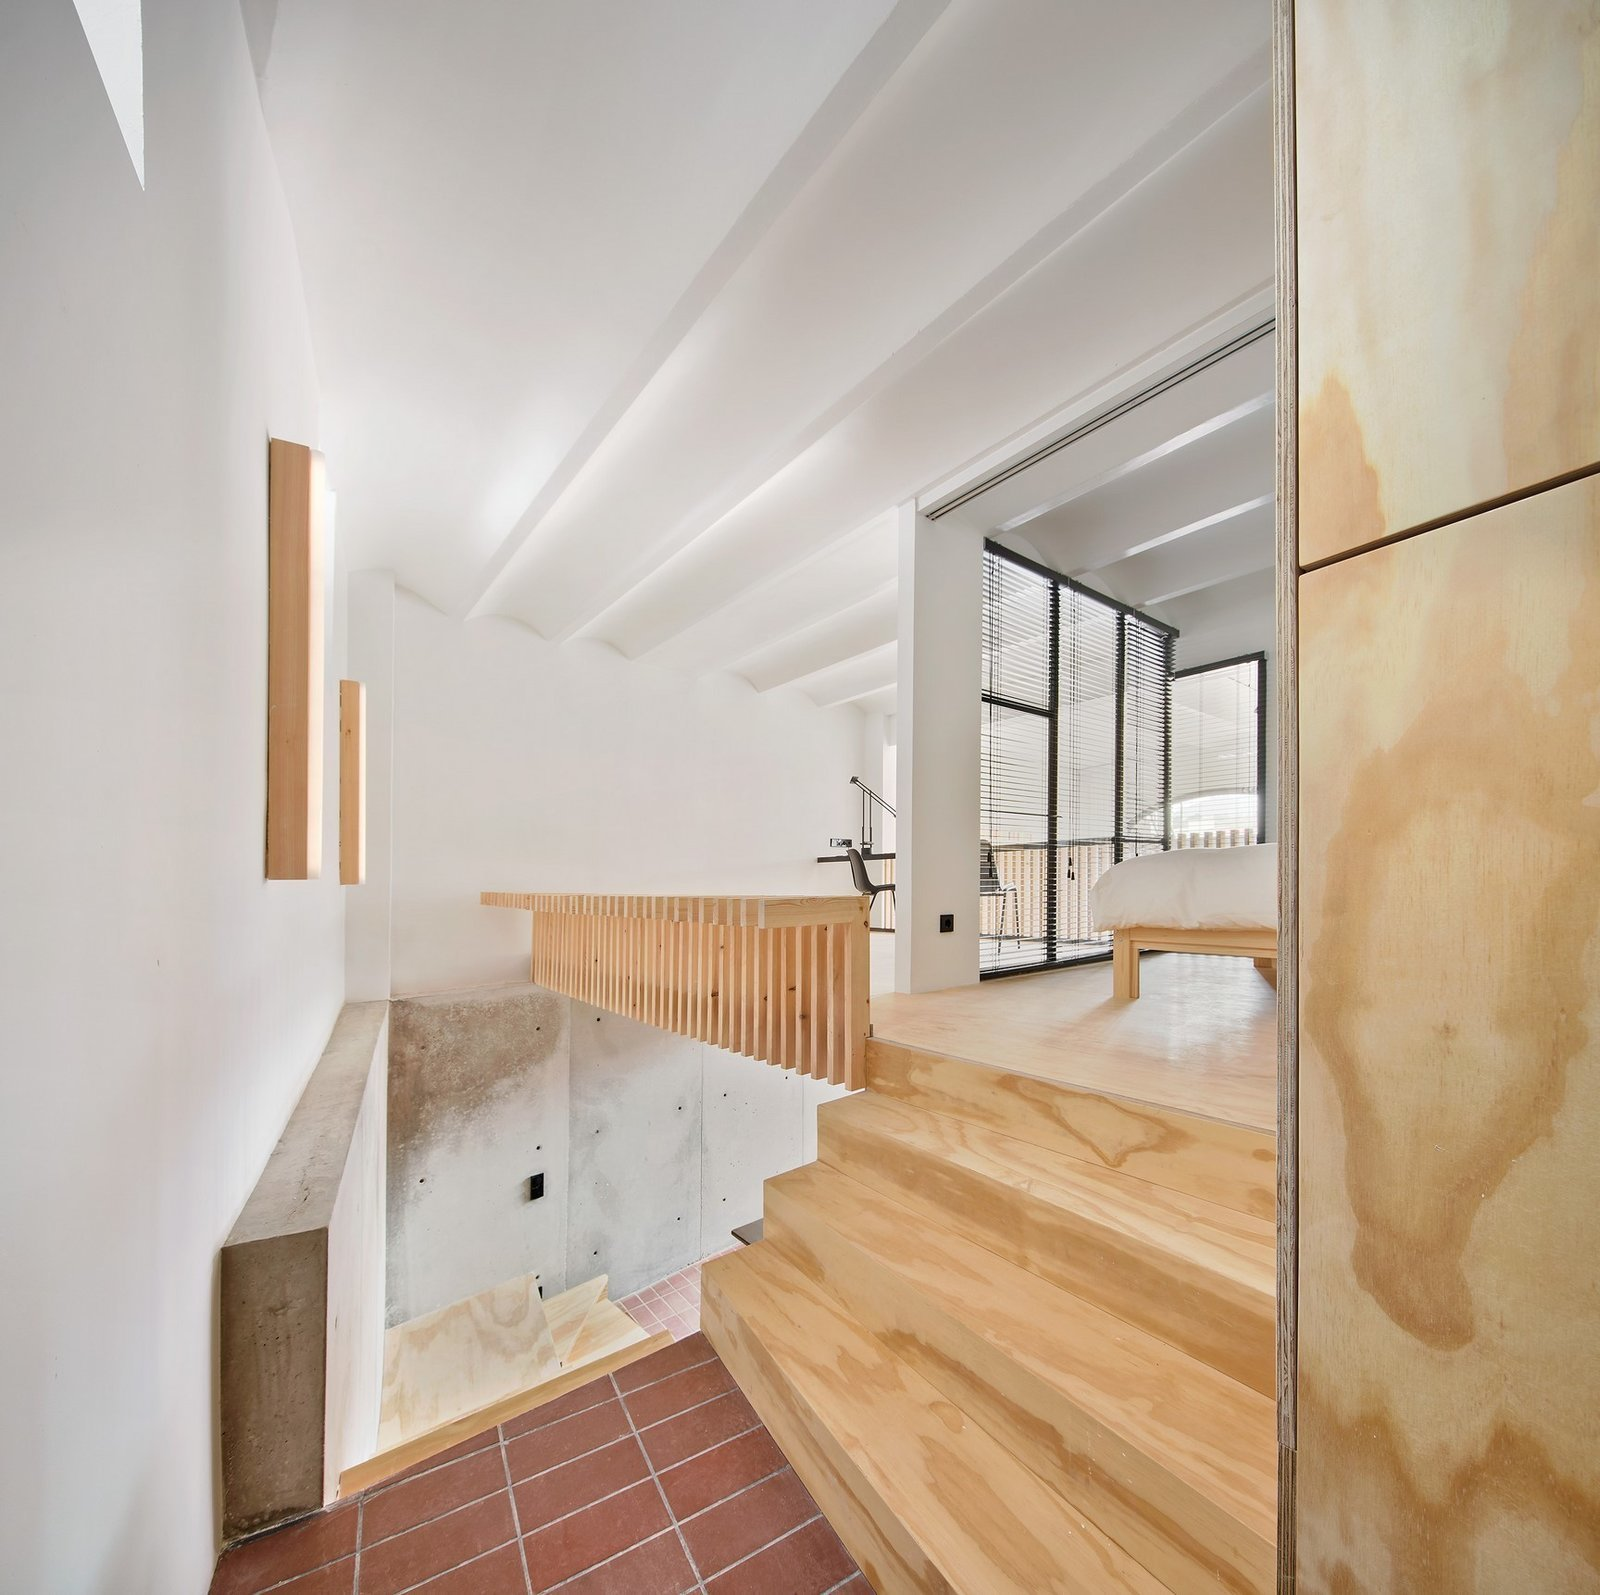 Staircase and Wood Tread  Photo 7 of 15 in A Renovation Turns a Once-Abandoned Barcelona Building Into an Airy Home